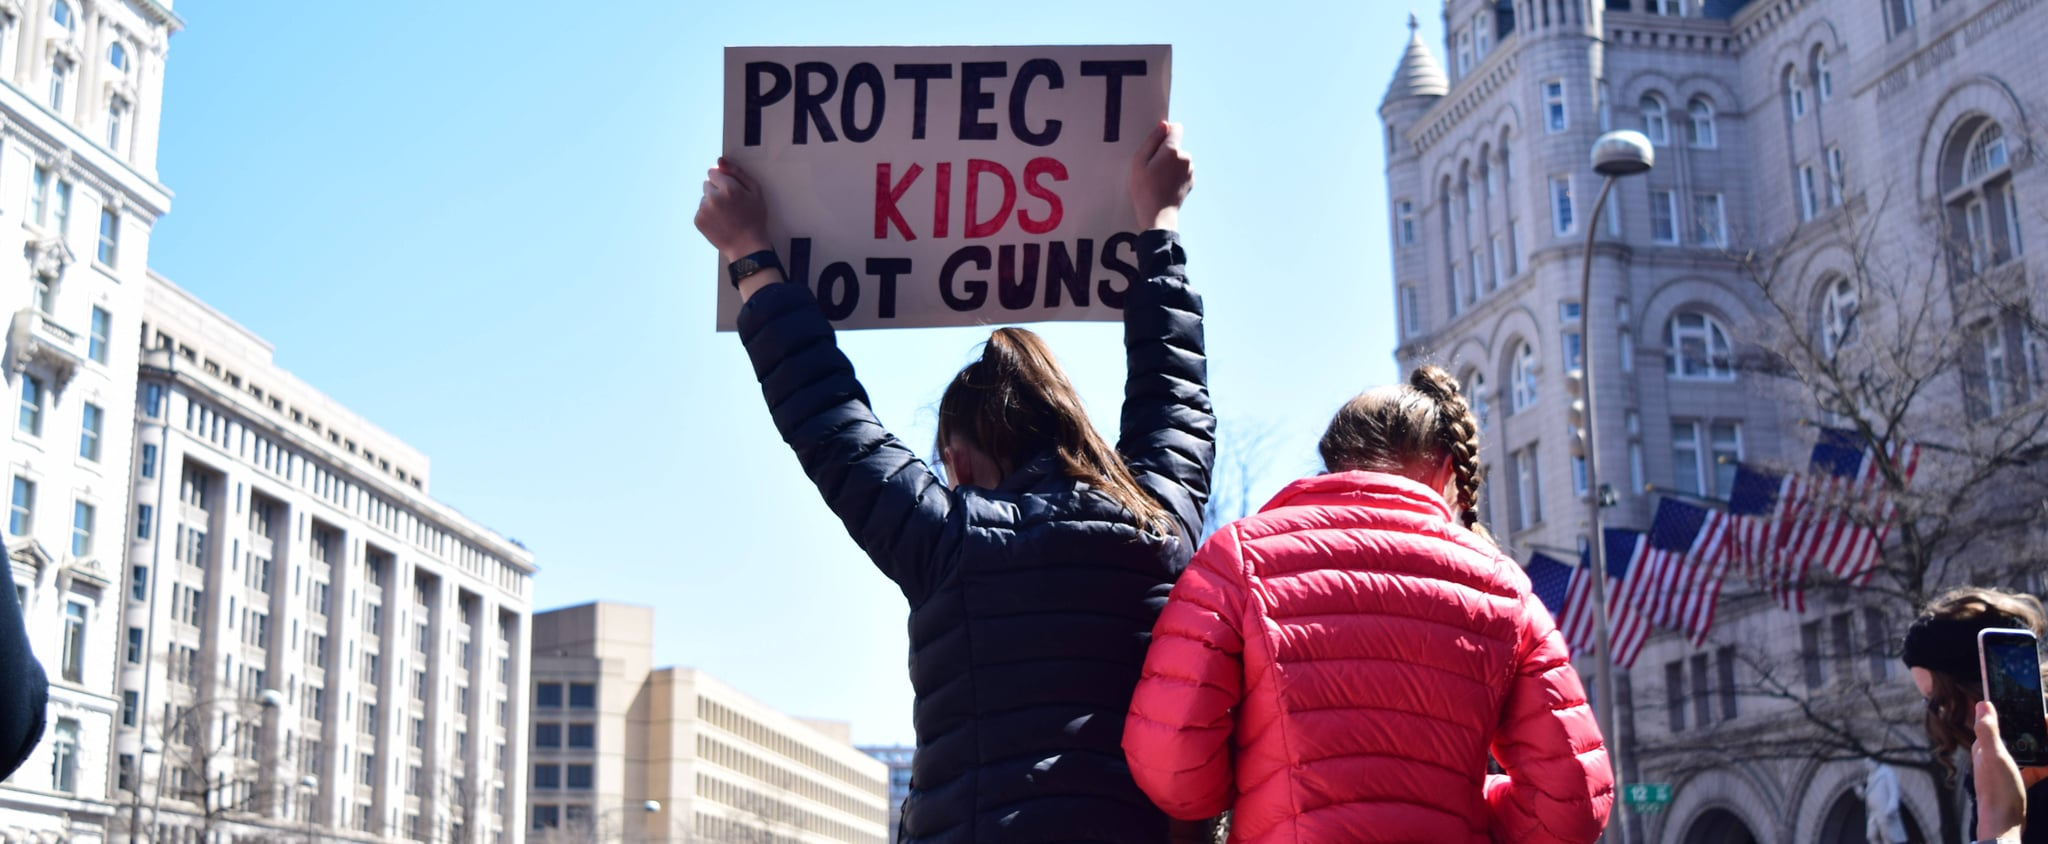 Personal Essay on Protecting Kids From Mass Shooters